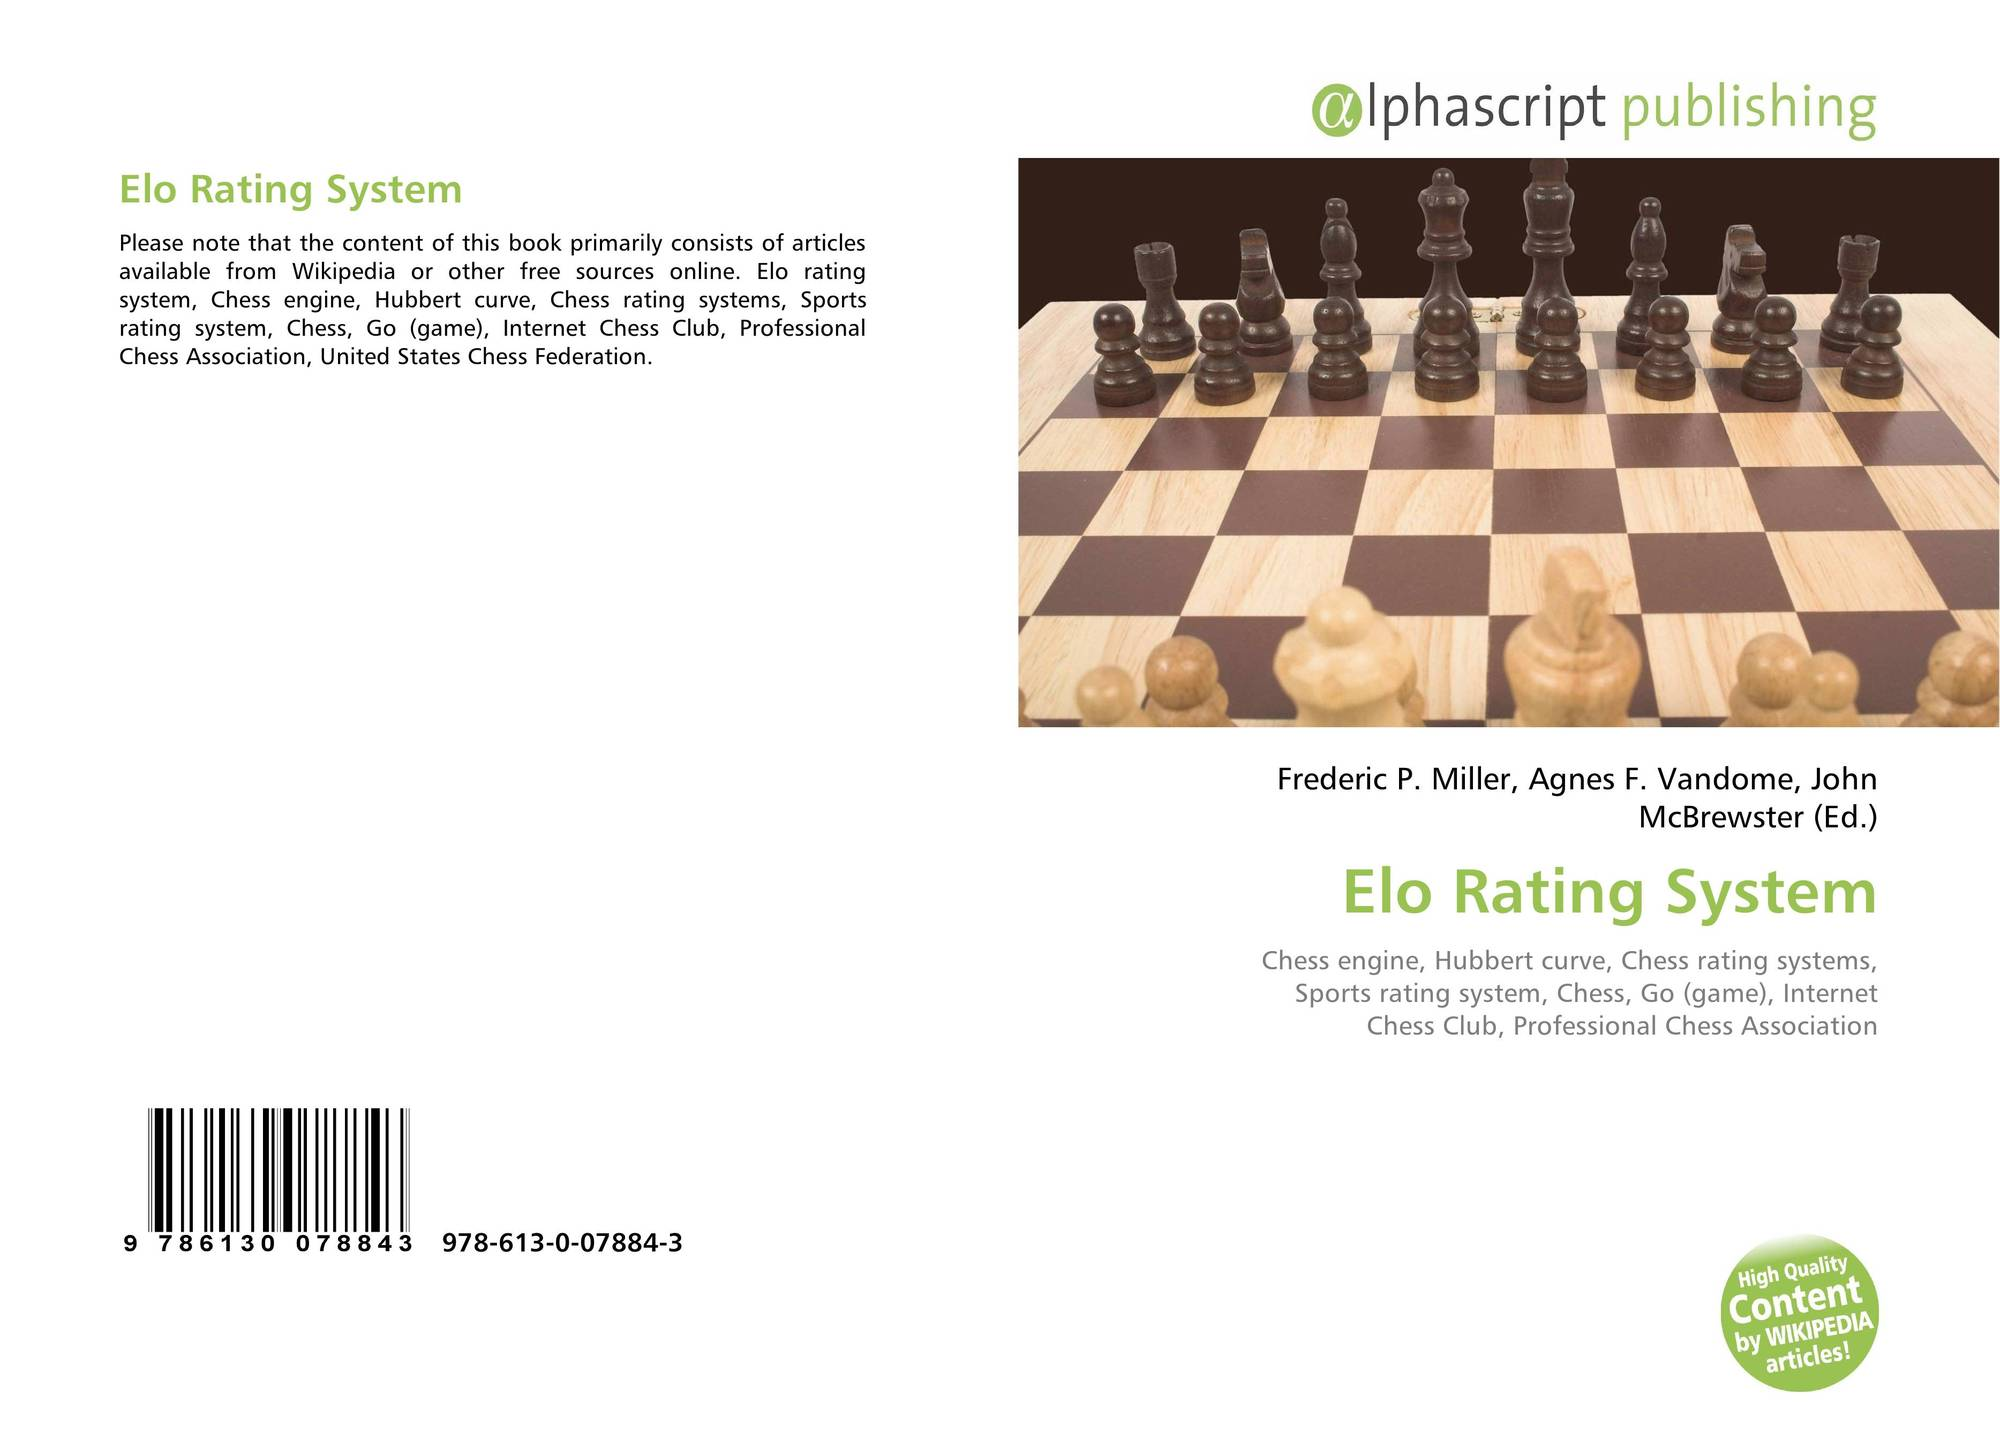 Elo Rating System, 978-613-0-07884-3, 6130078846 ,9786130078843